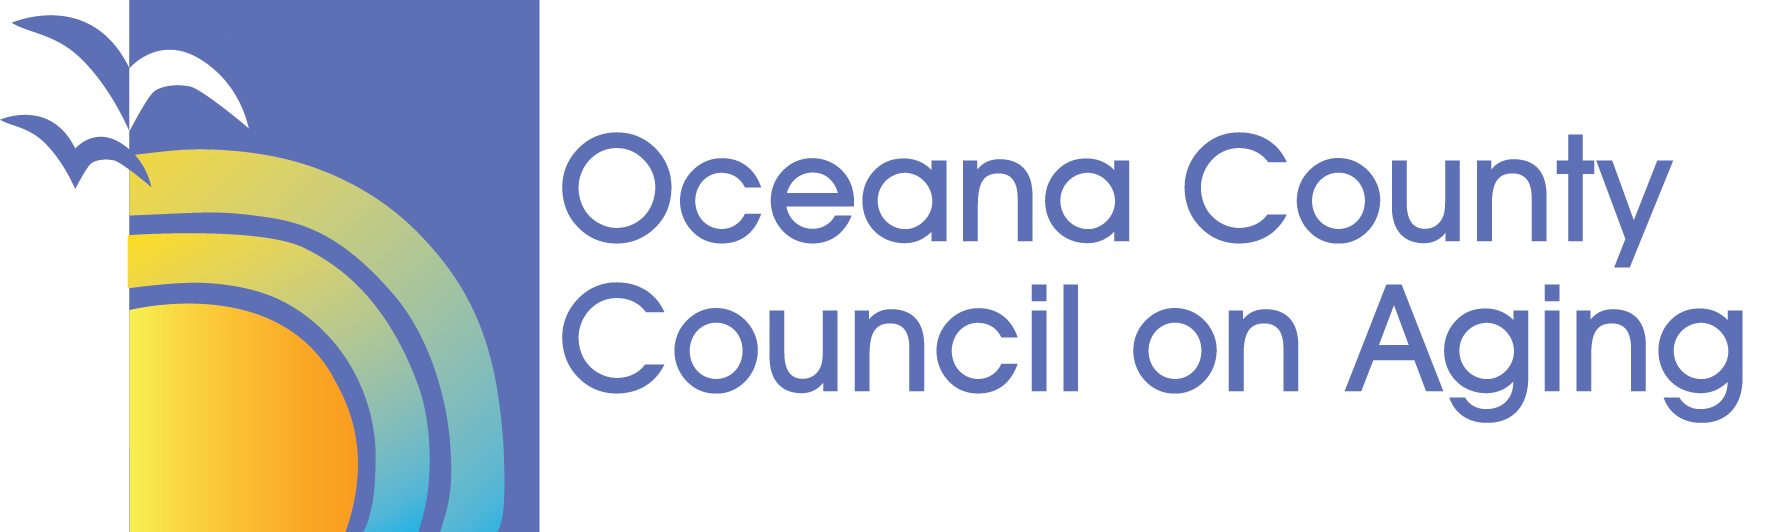 Oceana County Council on Aging Logo